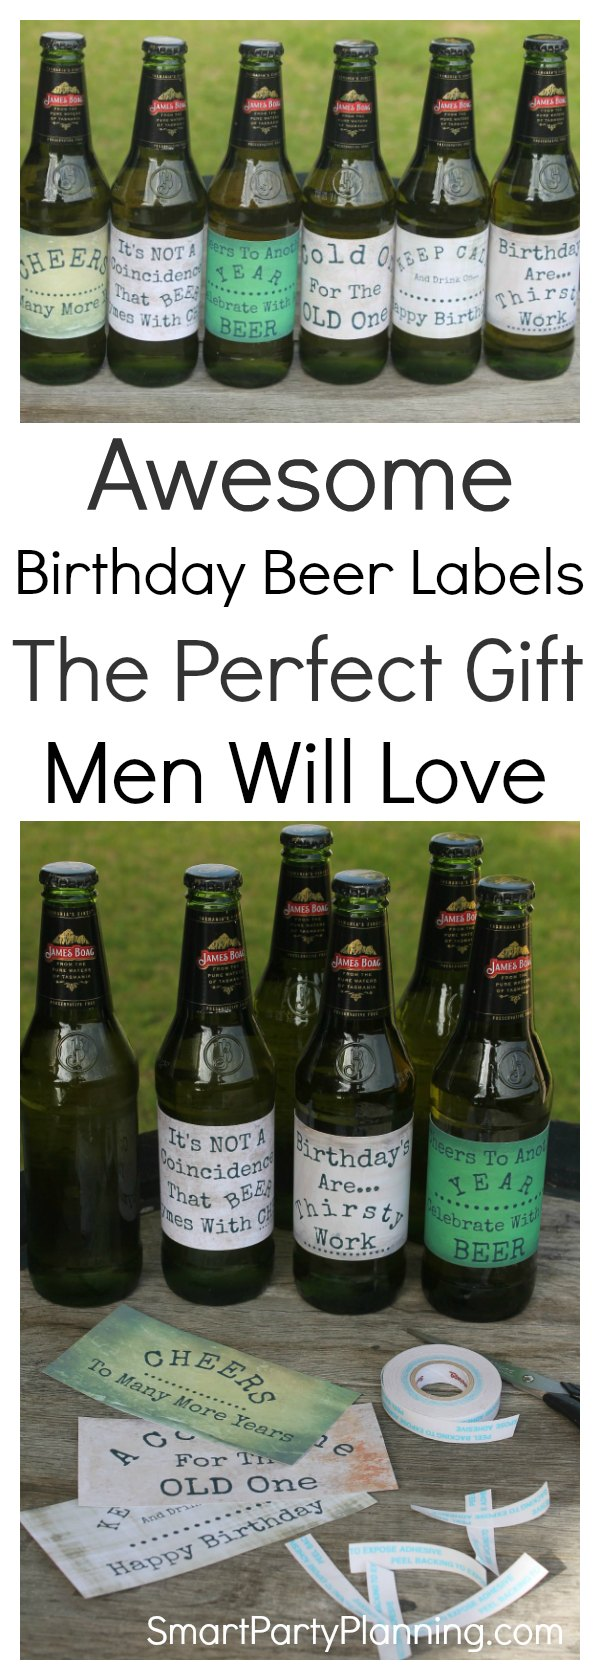 Awesome Birthday Beer Label design